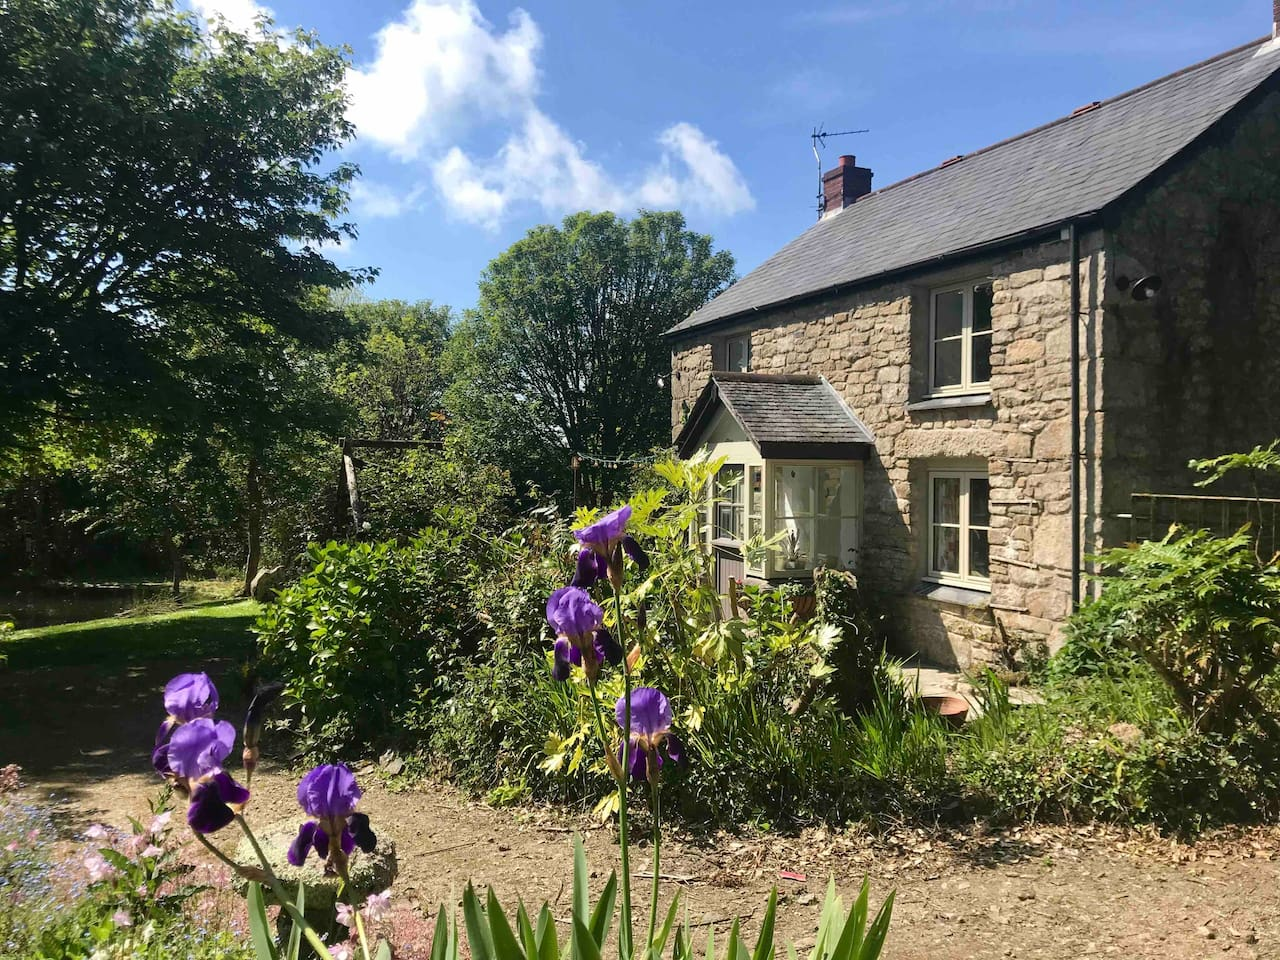 best airbnbs in cornwall, best airbnb in cornwall